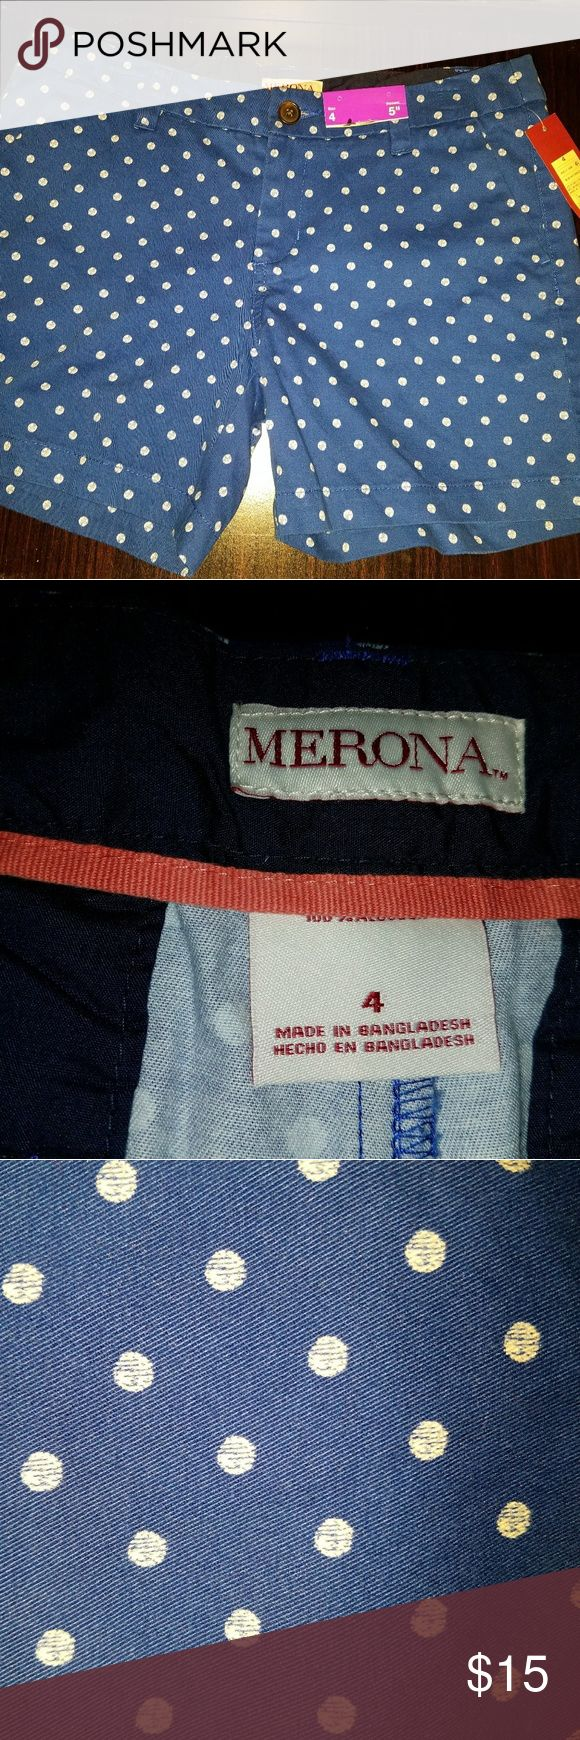 NWT Merona Women's Polka Dot Shorts Size 4 NEW WITH TAGS  Merona Women's Shirts Size 4 with 5 inch inseam Navy shorts with white polka dots   Bundle your likes for a private offer!  I do take bids. If you have any questions then just drop a comment (: Merona Shorts